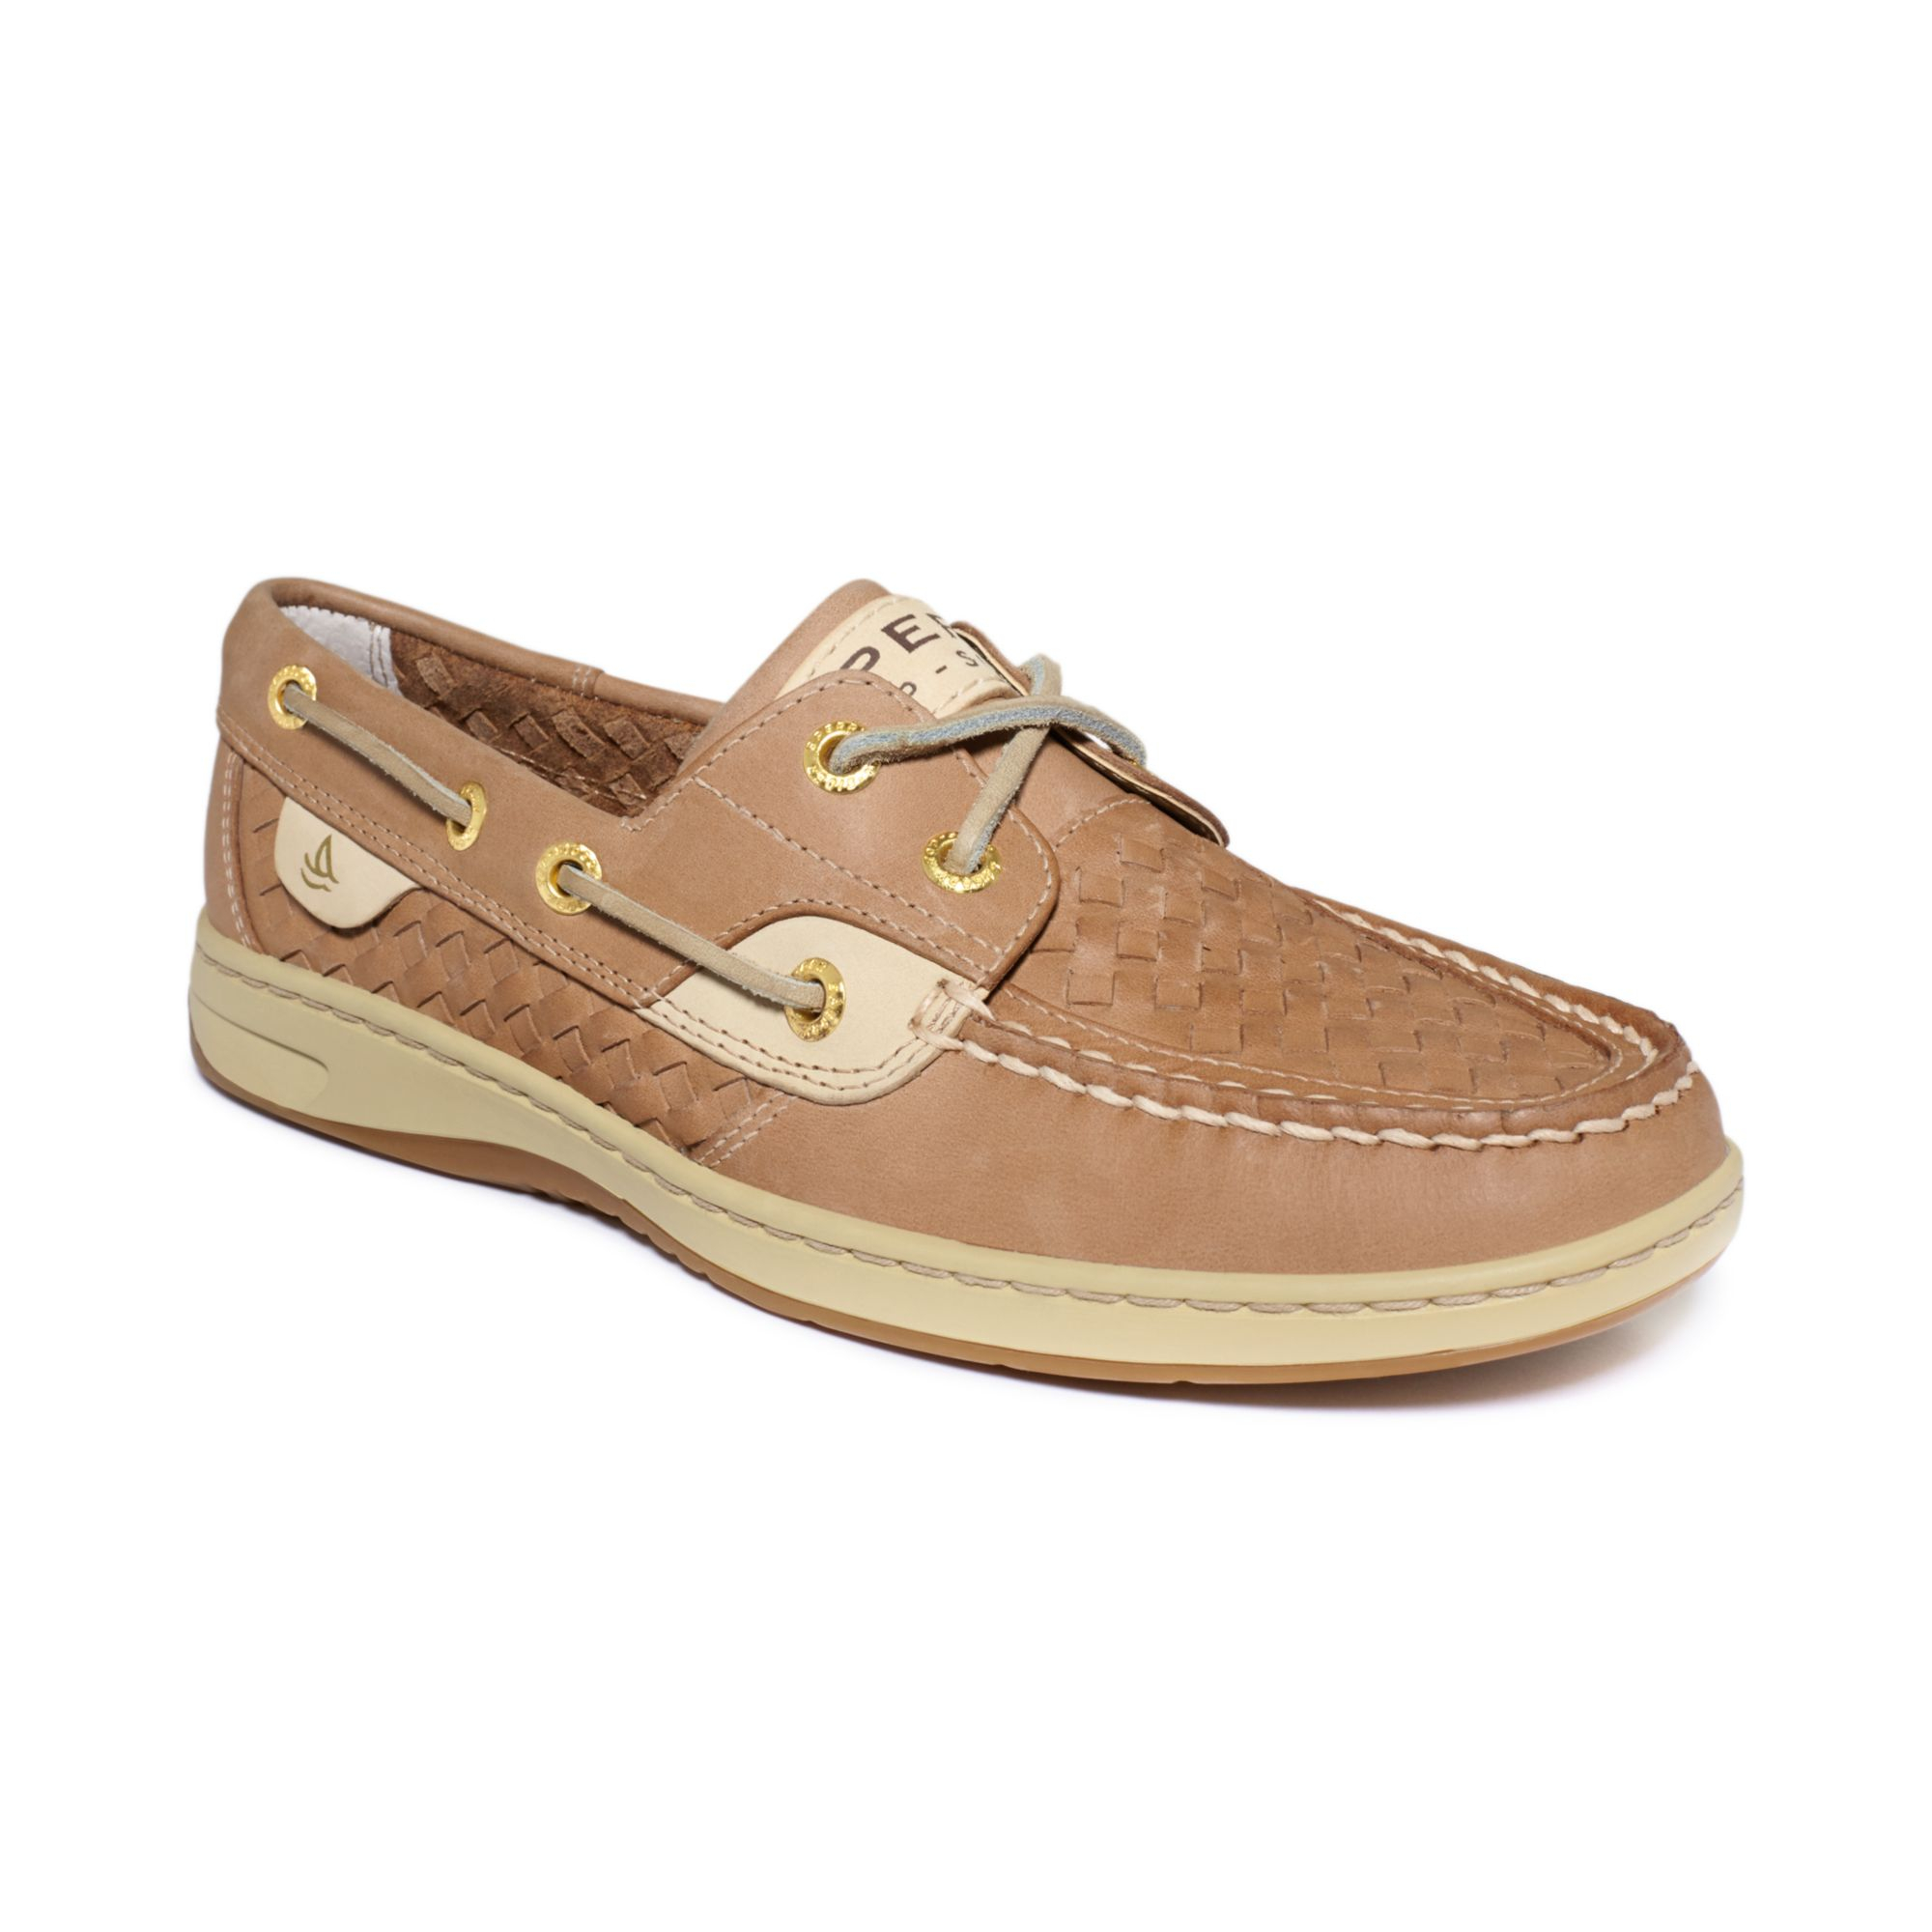 Sperry Top-sider Boat Shoes in Beige for Men (Linen Woven